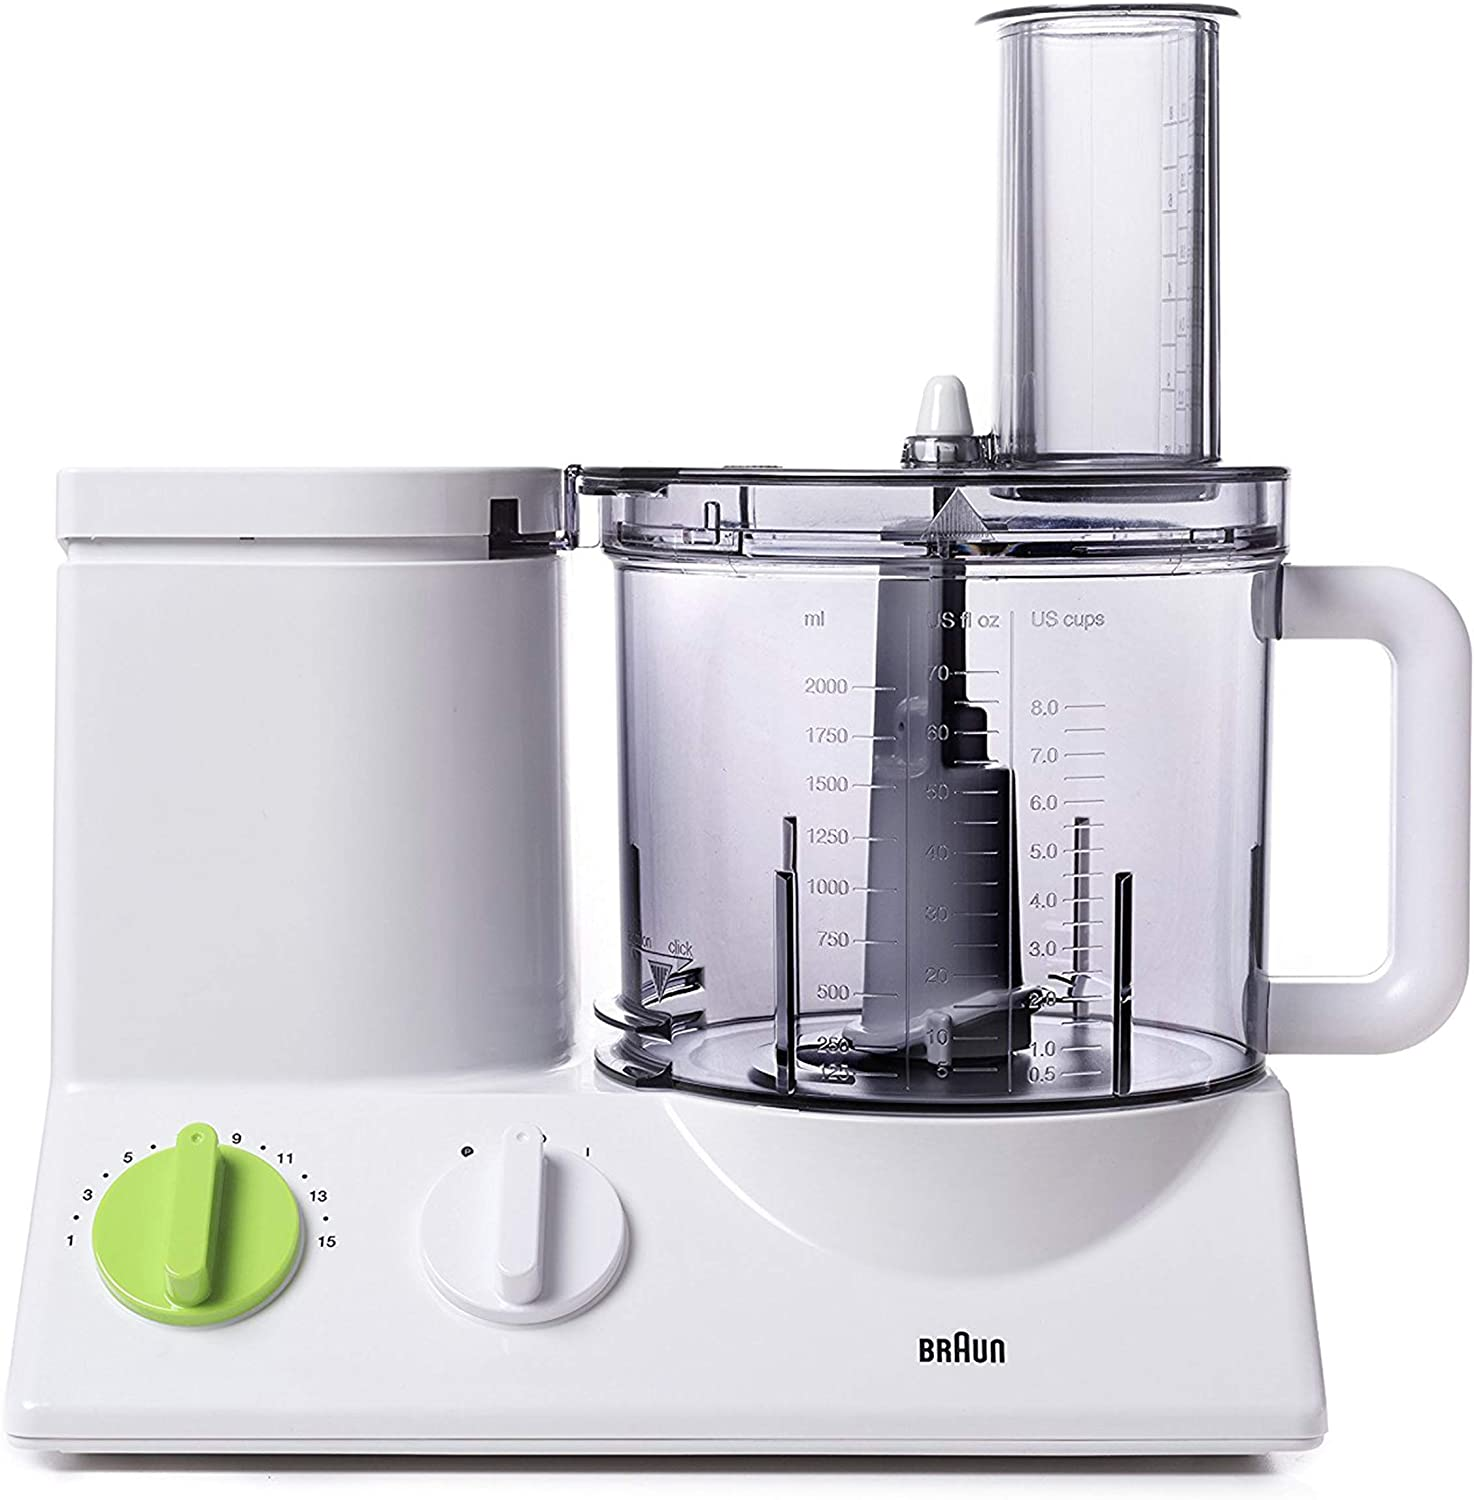 Can Commercial Food Processor Grind Chicken Bones